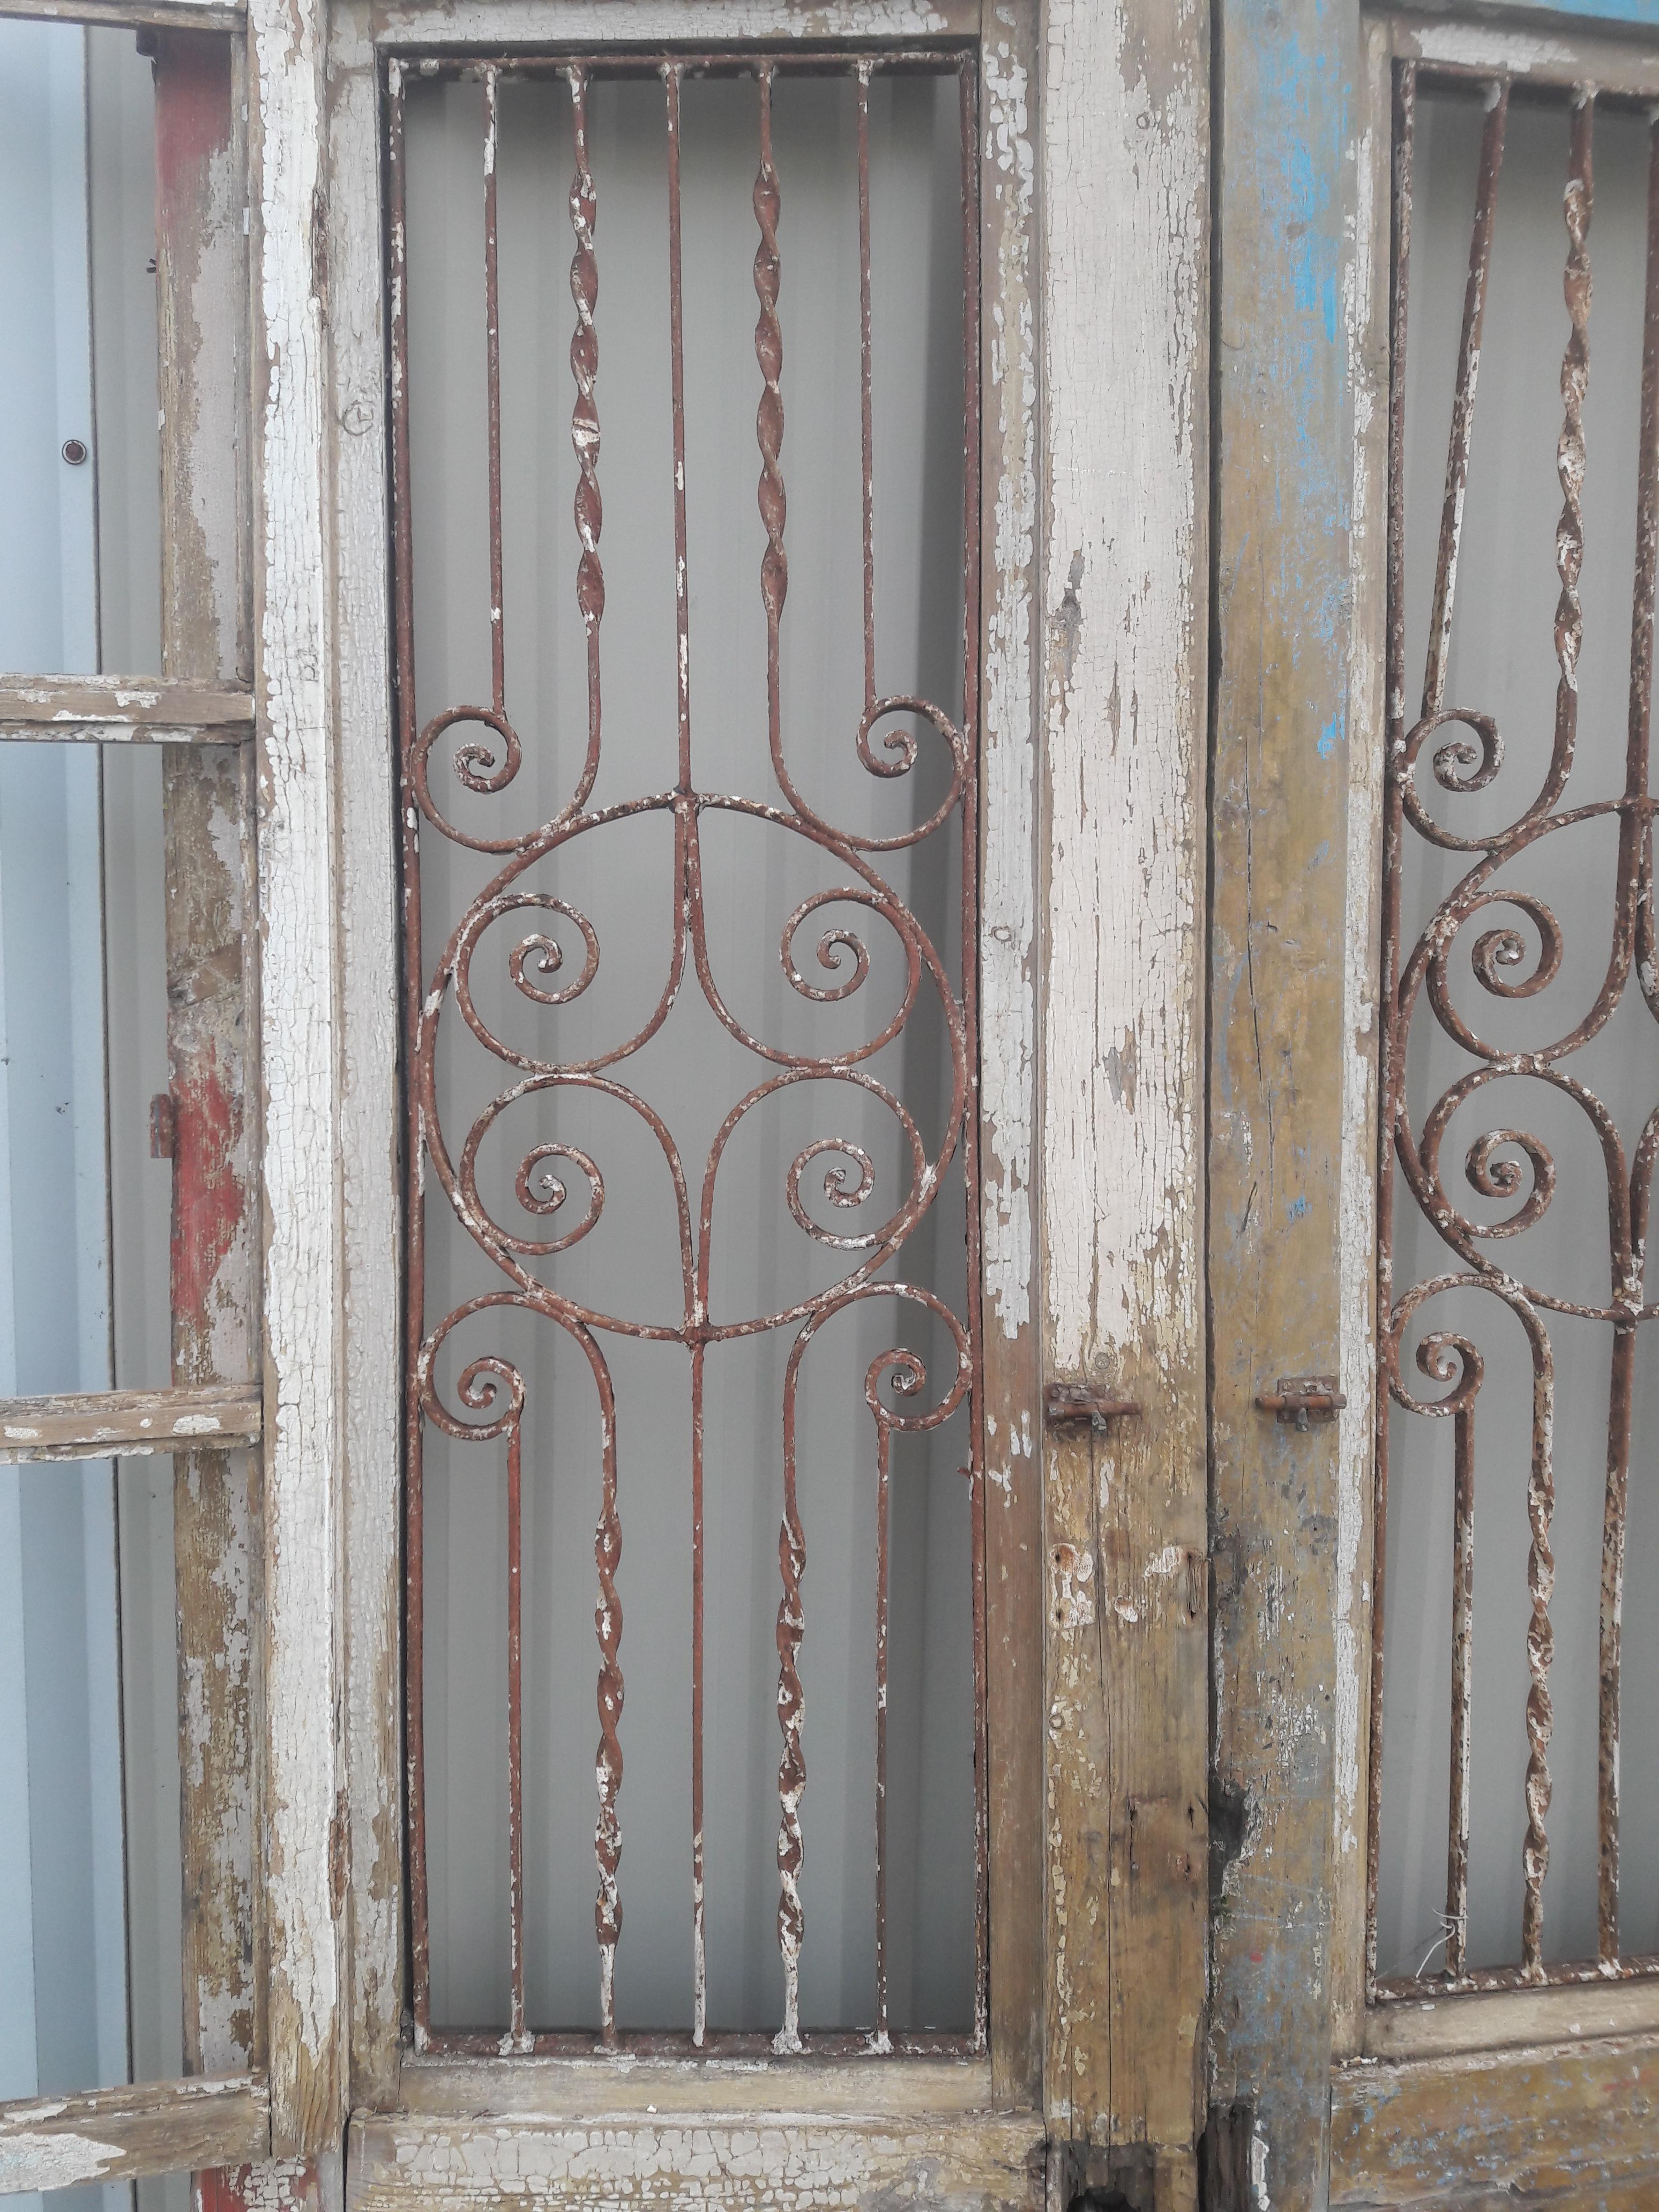 Antique French Iron Grill Door Rustic Farmhouse Natural Doors - a Pair - Image 7 of  sc 1 st  Chairish & Antique French Iron Grill Door Rustic Farmhouse Natural Doors - a ...